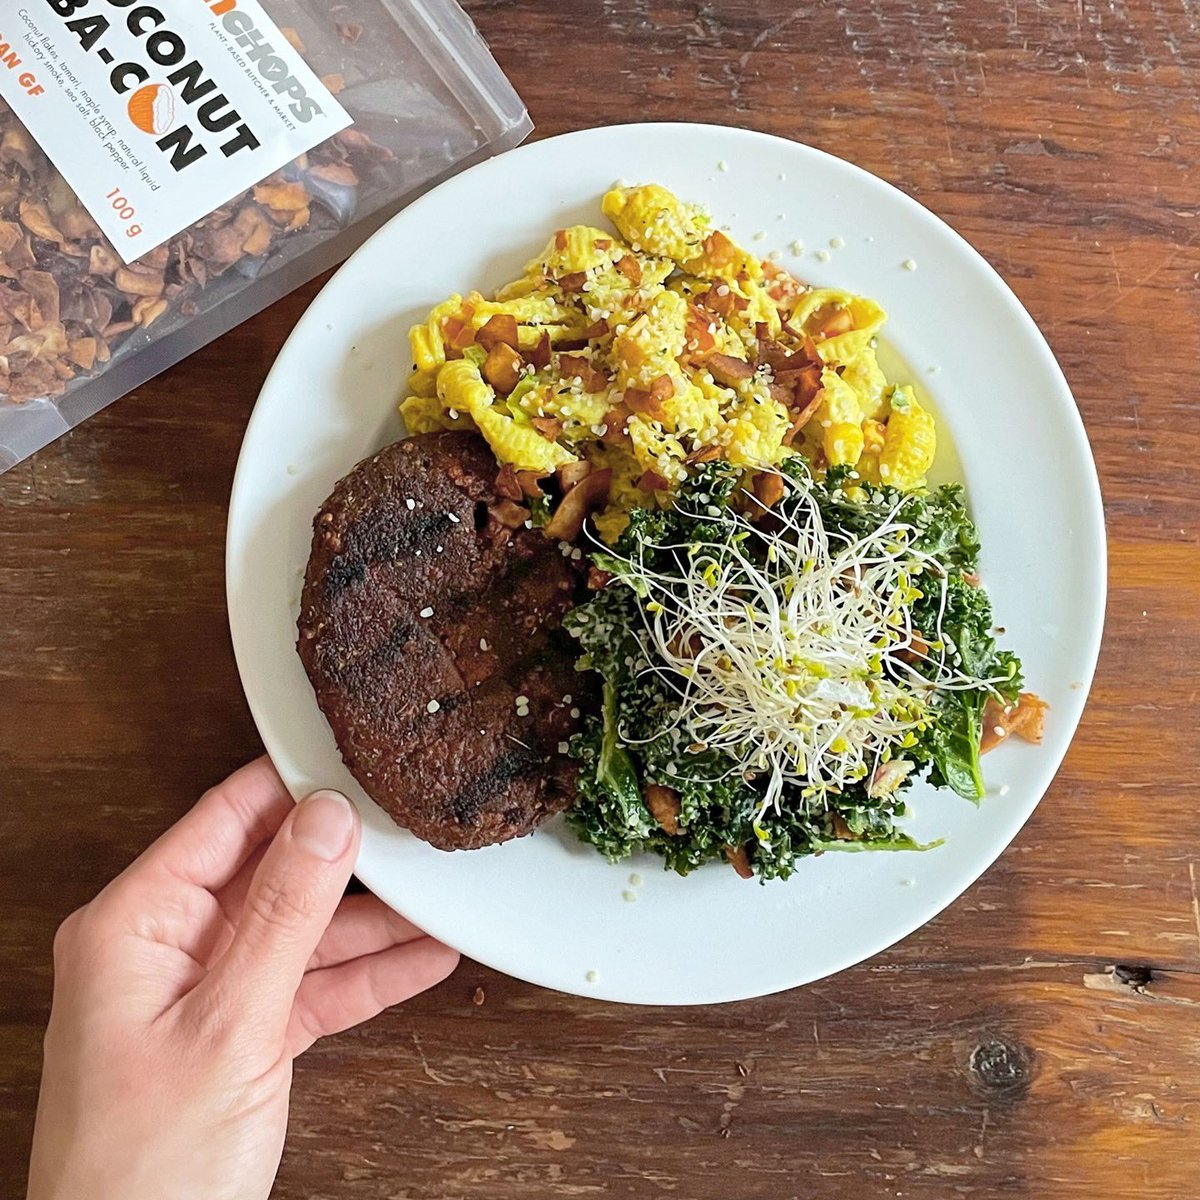 """Plant&Co's @YamChopsTO Montreal """"steak"""", pasta salad and kale caesar are the perfect triple threat for your Tuesday night!💥  #vegano #veganfoodie #vegancommunity #healthyeating #plants #healthyliving #vegans #yummy #delicious #eatclean #veggie #healthiswealth #vegandinner"""